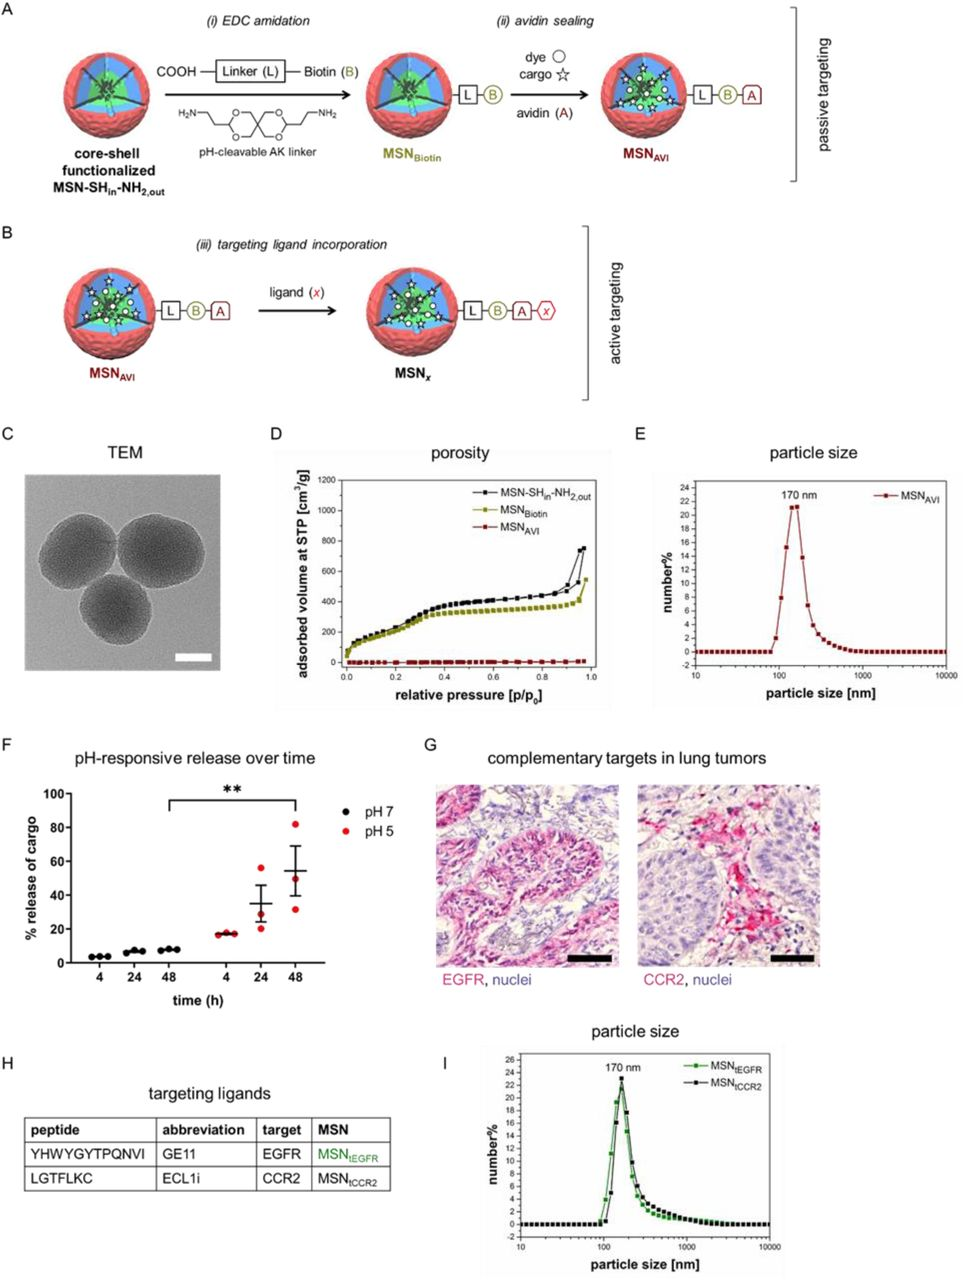 Increased uptake of CCR2 targeted nanoparticles in murine alveolar macrophages in vitro . a) EGFR expression in A549 cells in comparison to another NSCLC cell line, H520 cells, b) Western blot analysis of CCR2 expression in murine alveolar macrophage (MH-S) cells in comparison to A549 cells. c) Untargeted versus CCR2-targeted uptake of ATTO 633-labeled MSN AVI and MSN tCCR2 (red in the upper panel, gray in the lower panel) by MH-S cells after 1 h; CCR2 (green) and cell nuclei (blue) visualized by confocal microscopy. Scale bar = 25 μm. d) Increased uptake of ATTO 488-labeled MSN tCCR2 versus MSN AVI after 1 h by MH-S cells measured by flow cytometry analysis. * p = 0.0286, Mann-Whitney test; values given are an average of four independent experiments ± standard error of the mean.